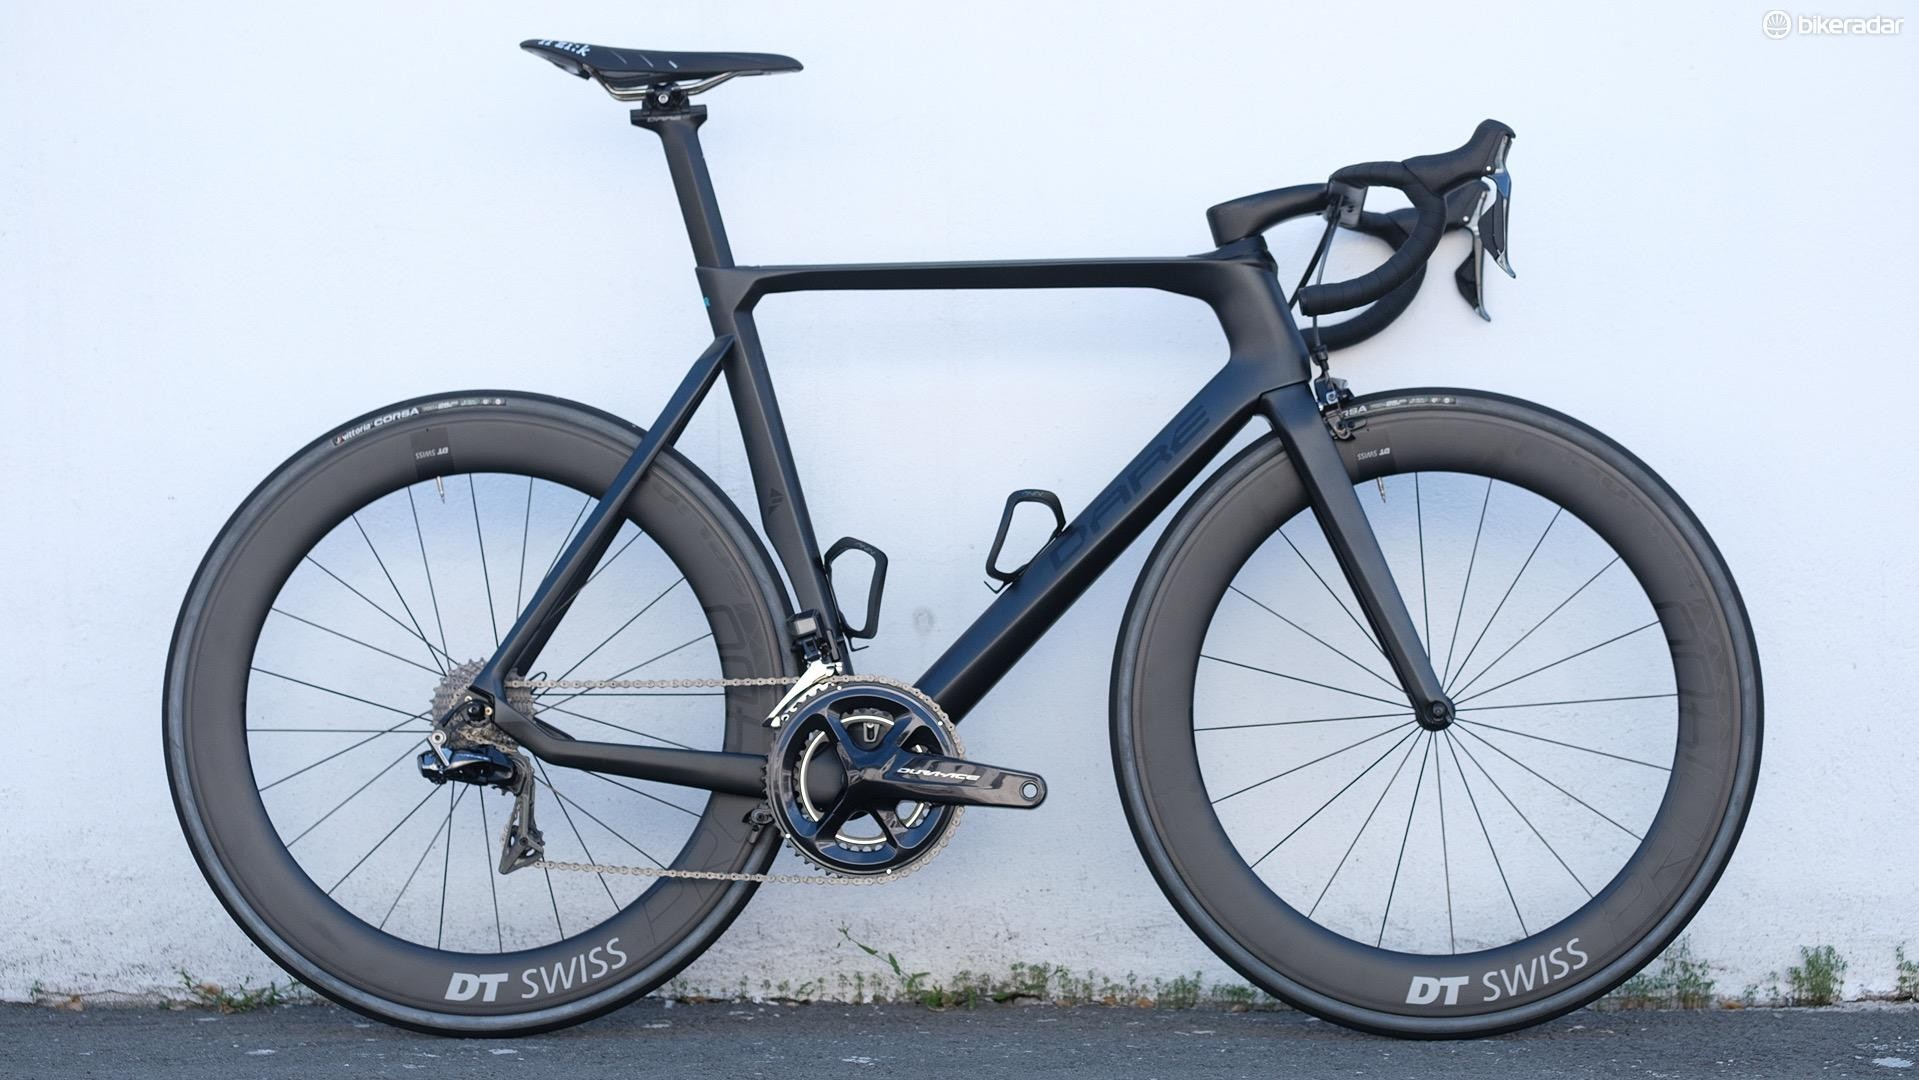 The VSR is Dare's aero bike